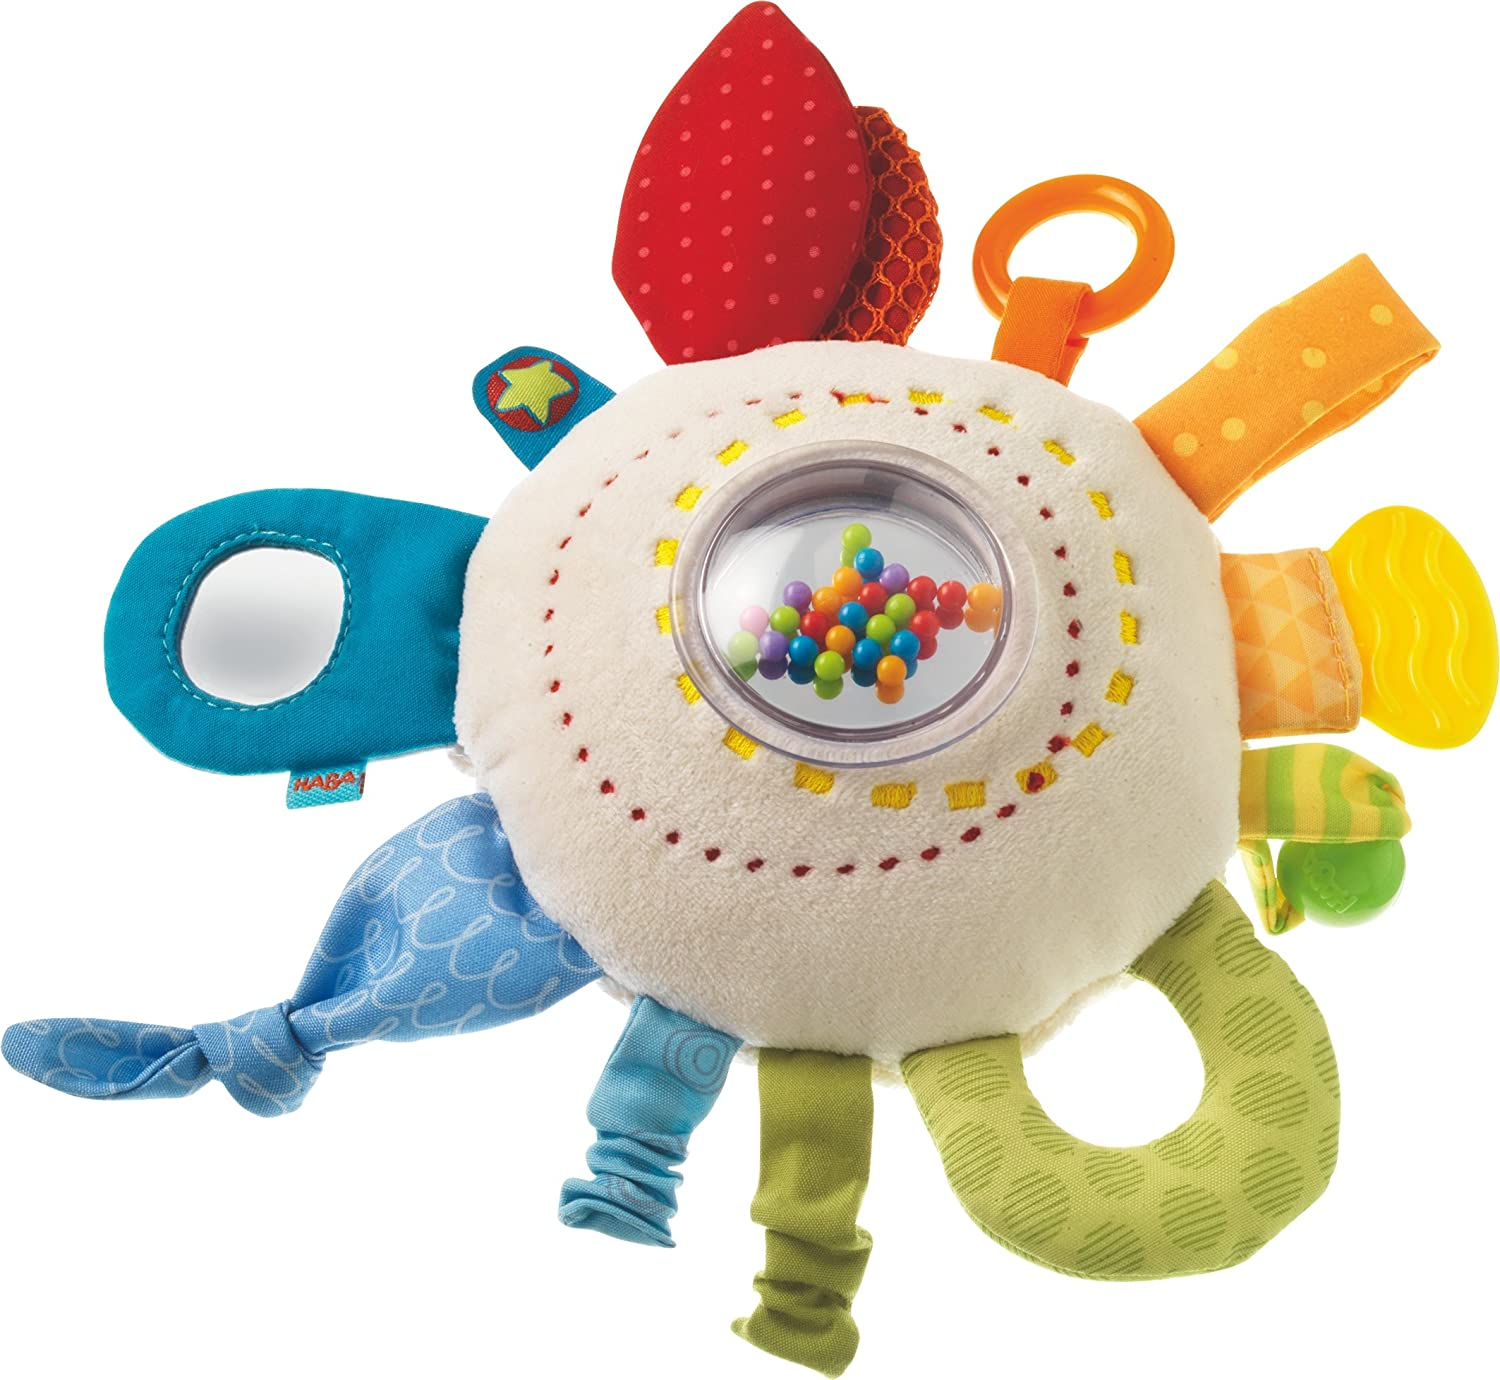 HABA Teether Cuddly Rainbow Round - Soft Activity Toy with Rattling & Teething Elements, Multicolored 301670